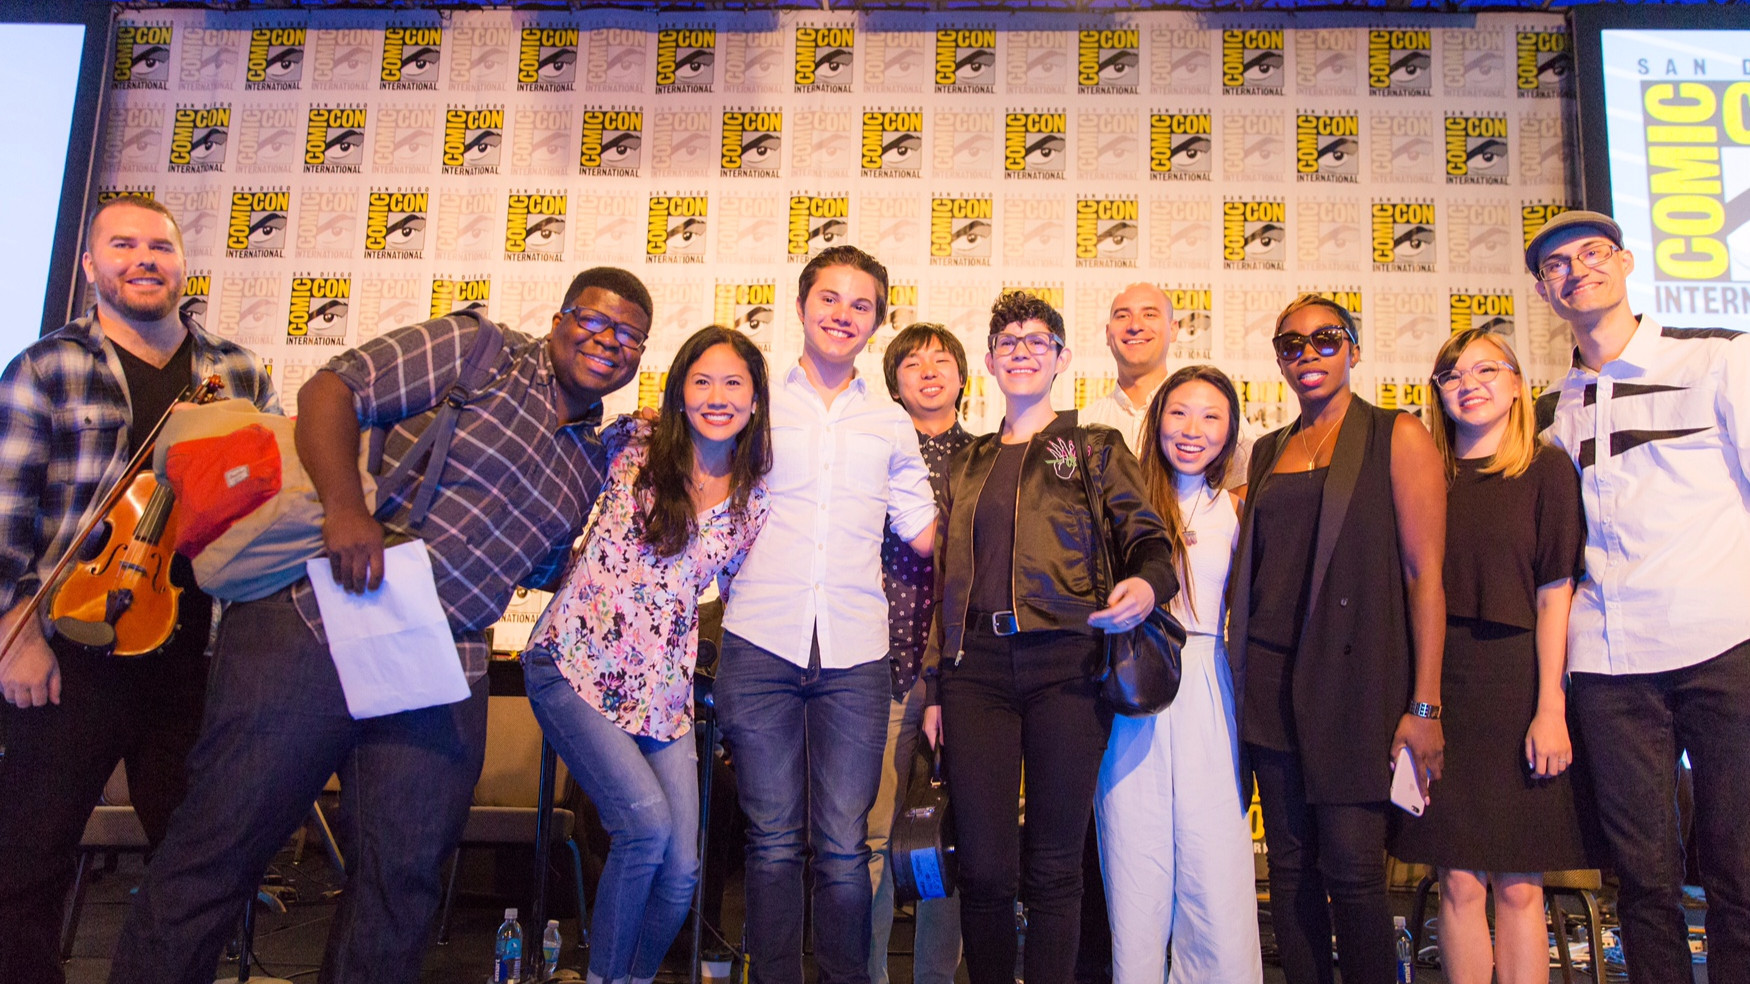 """Steven Universe"" panelists, from left, Jeff Ball, Ian Jones-Quartey, Deedee Magno Hall, Zach Callison, Jeff Liu, Rebecca Sugar, Ben Levin, Michaela Dietz, Estelle, Aivi Tran and Steven ""Surasshu"" Velema."